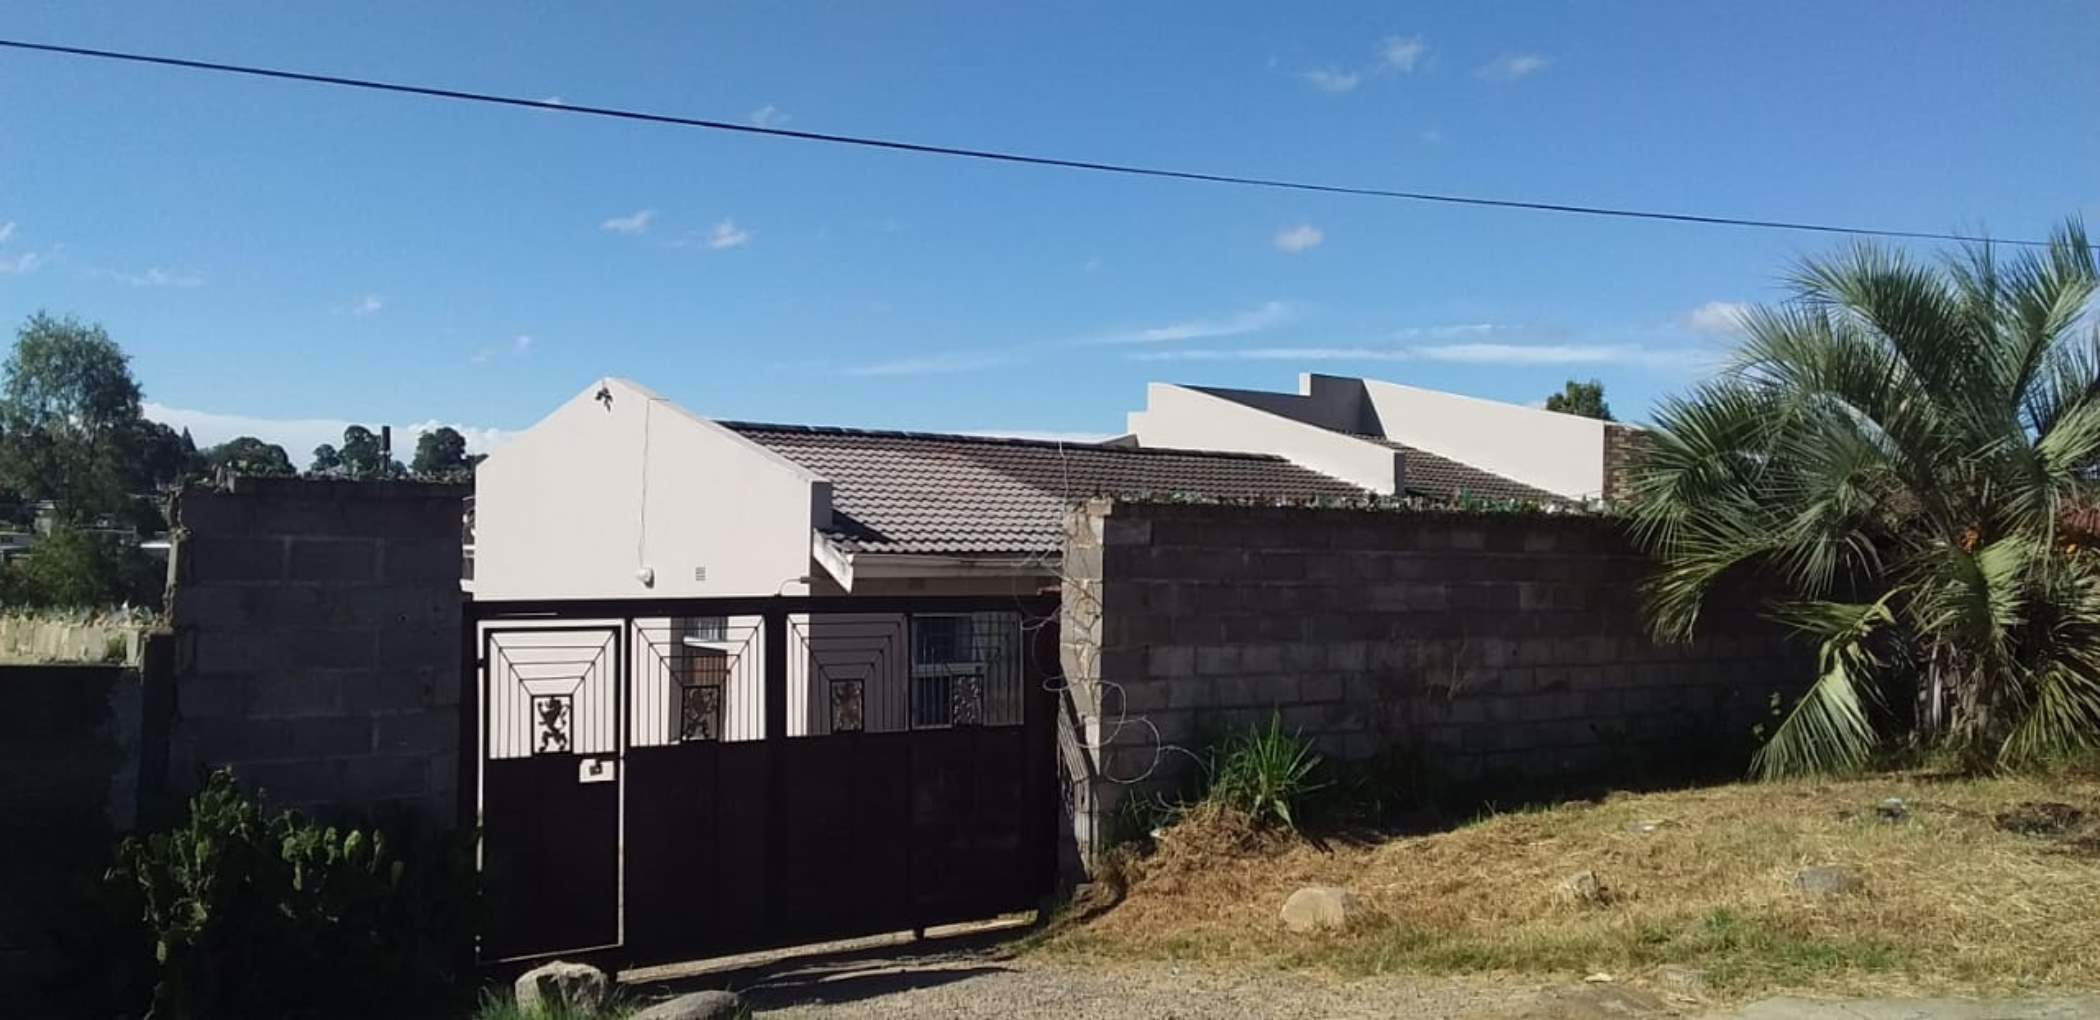 Commercial business for sale in Southernwood (Mthatha)